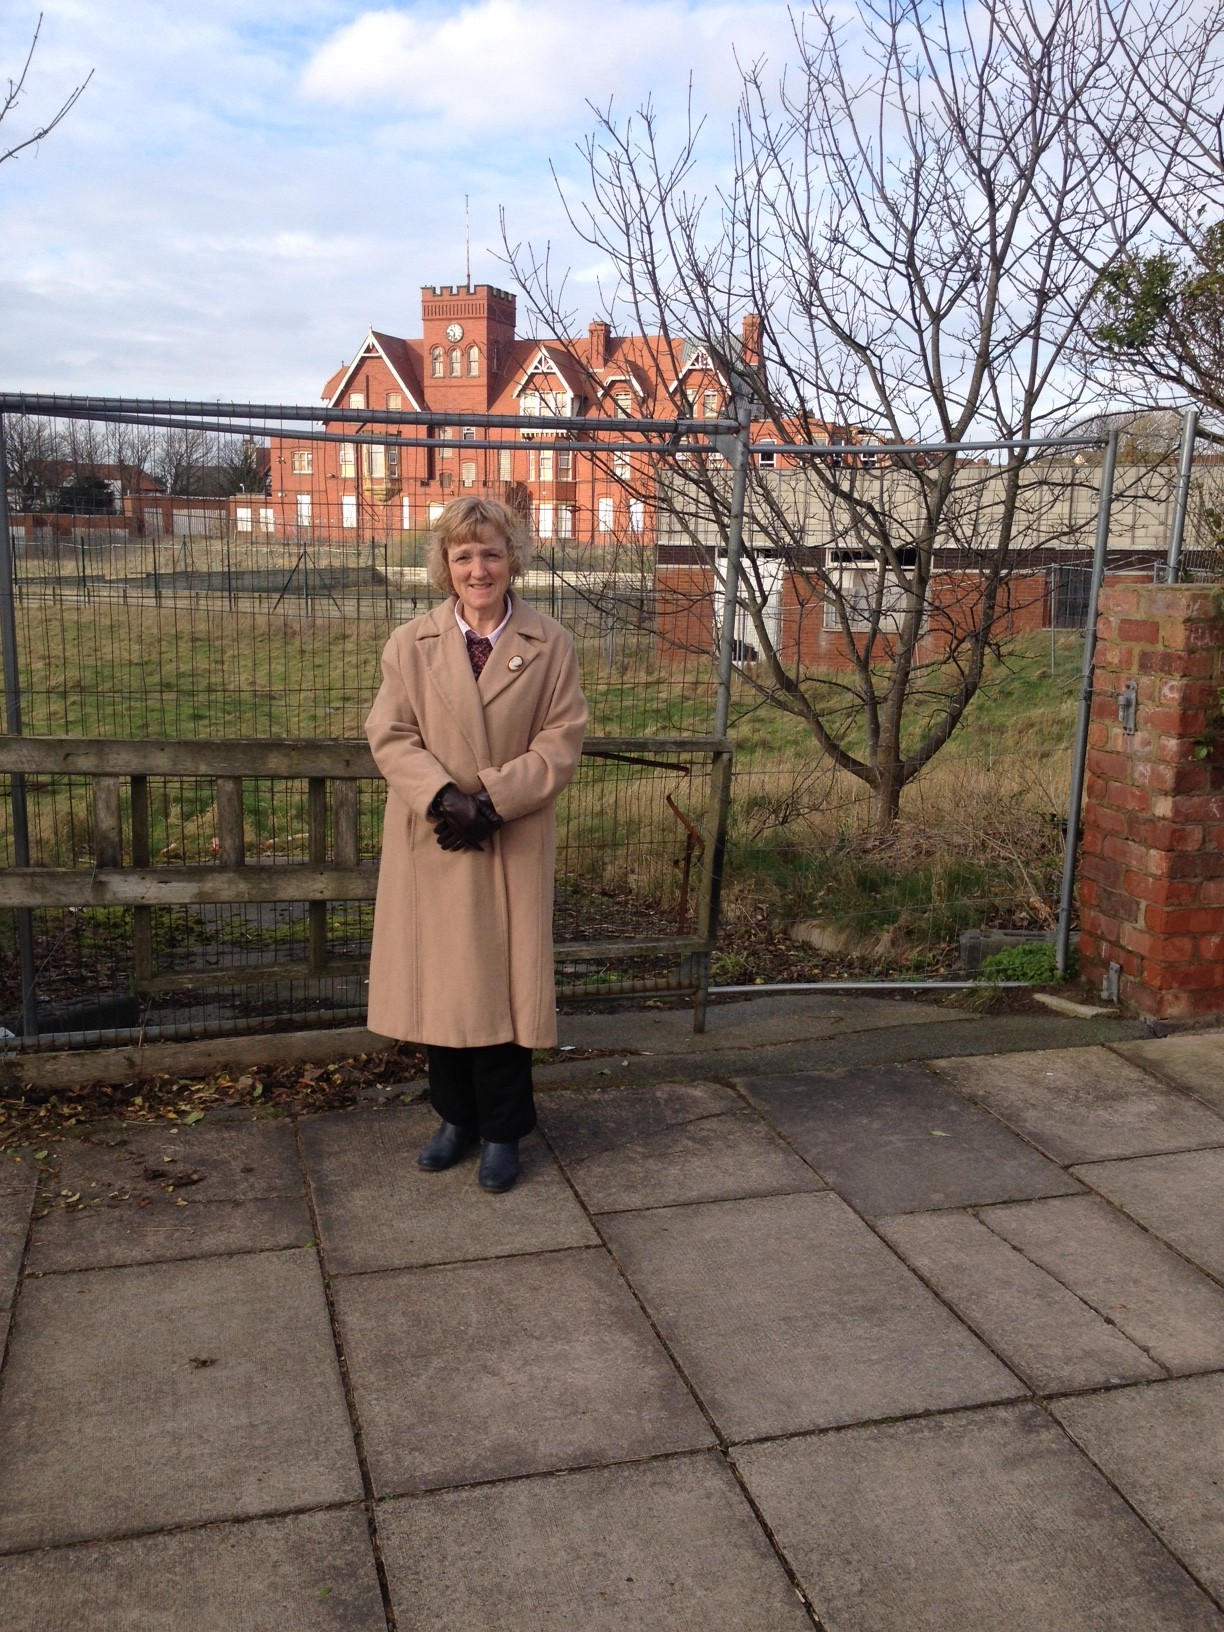 Residents angry over deaf school stalemate